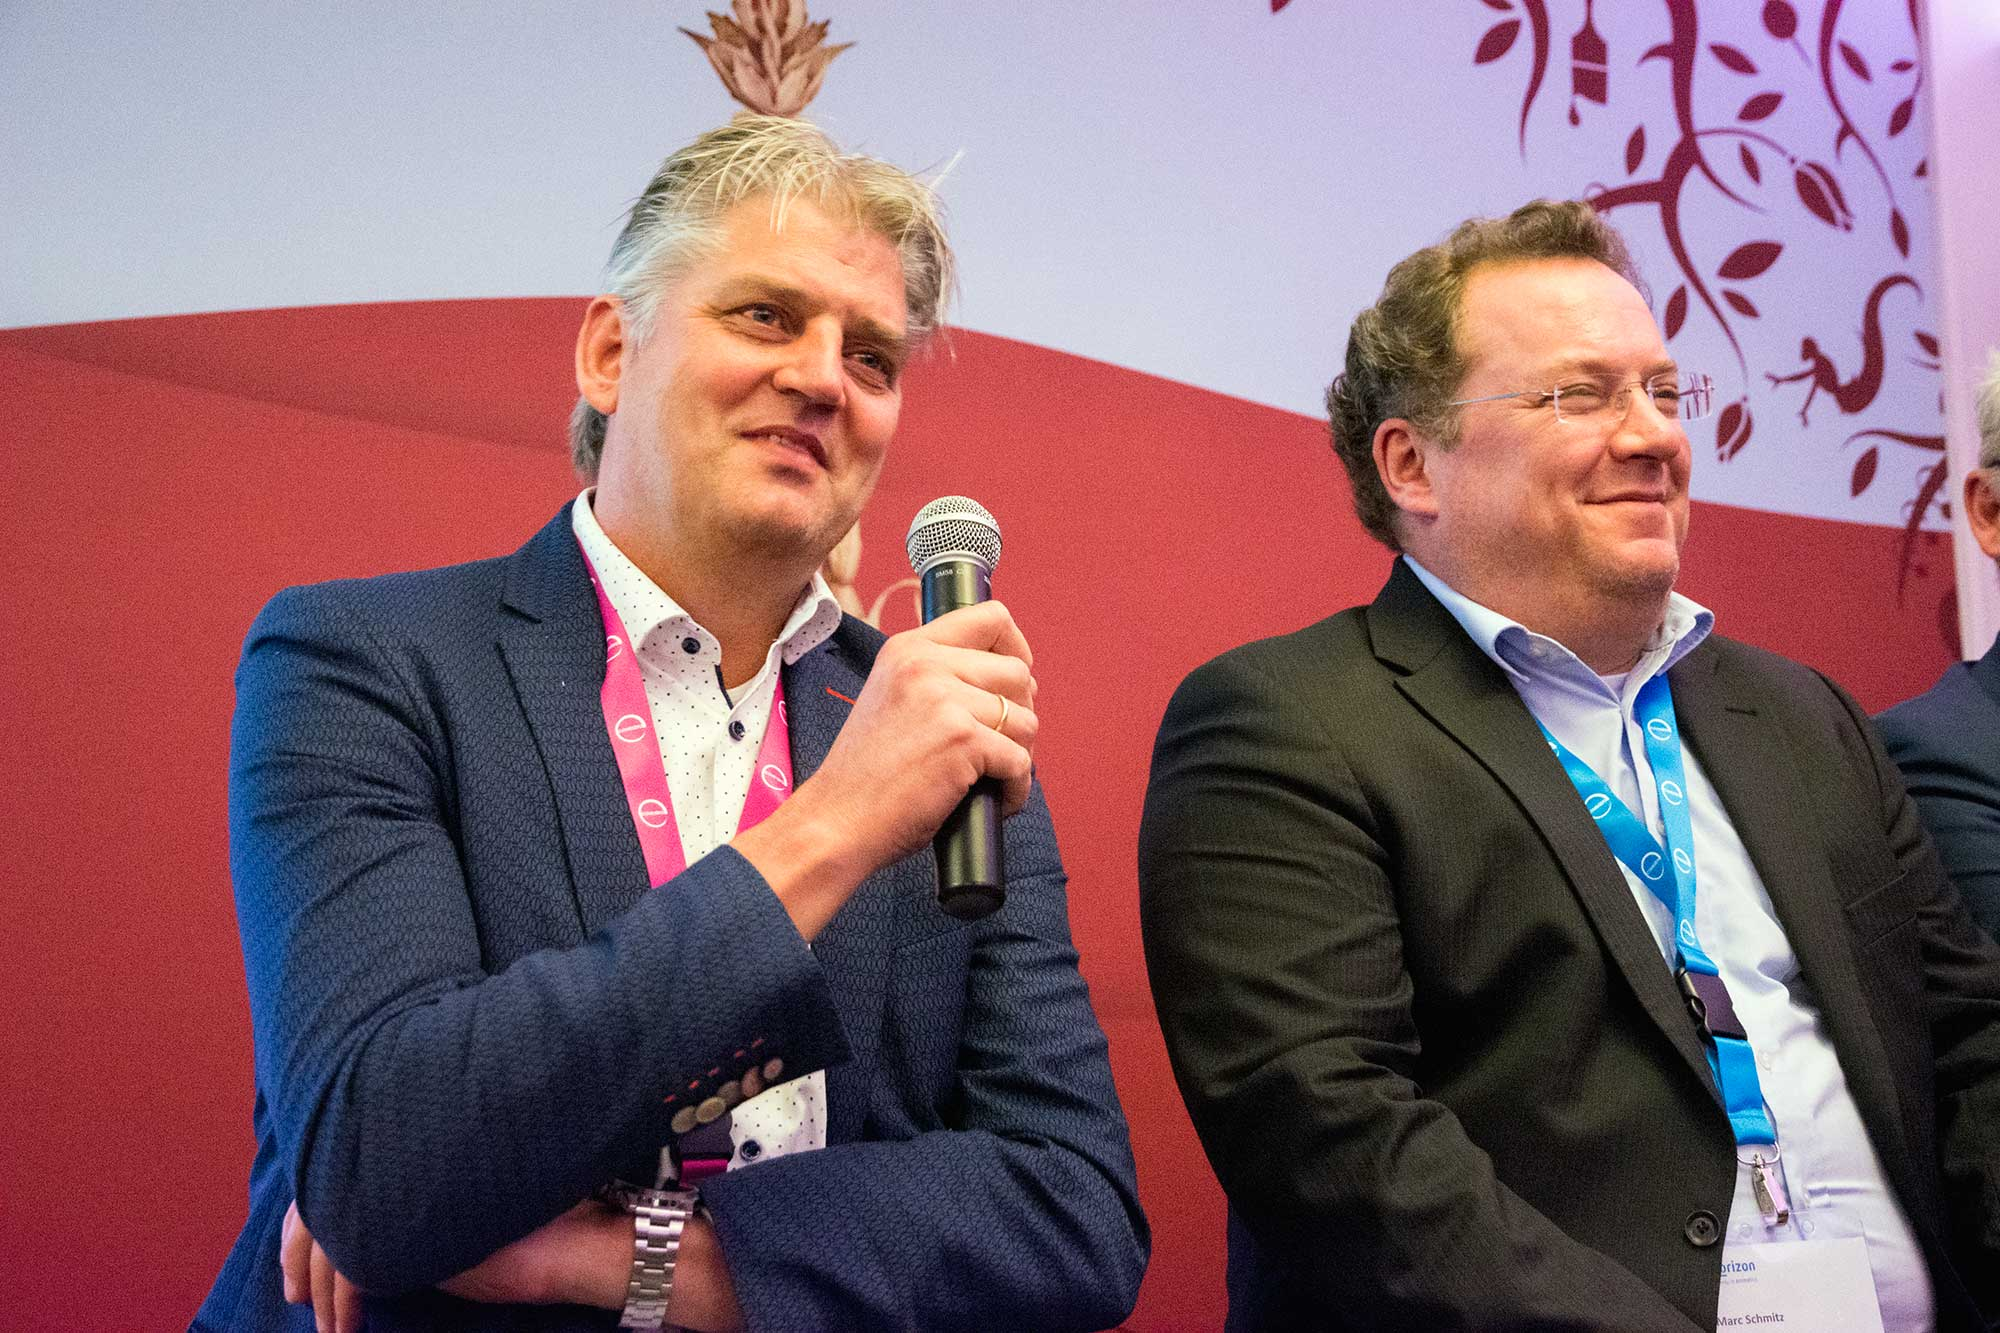 Bert van de Beld and Marc Schmitz on the 5th Biorizon event